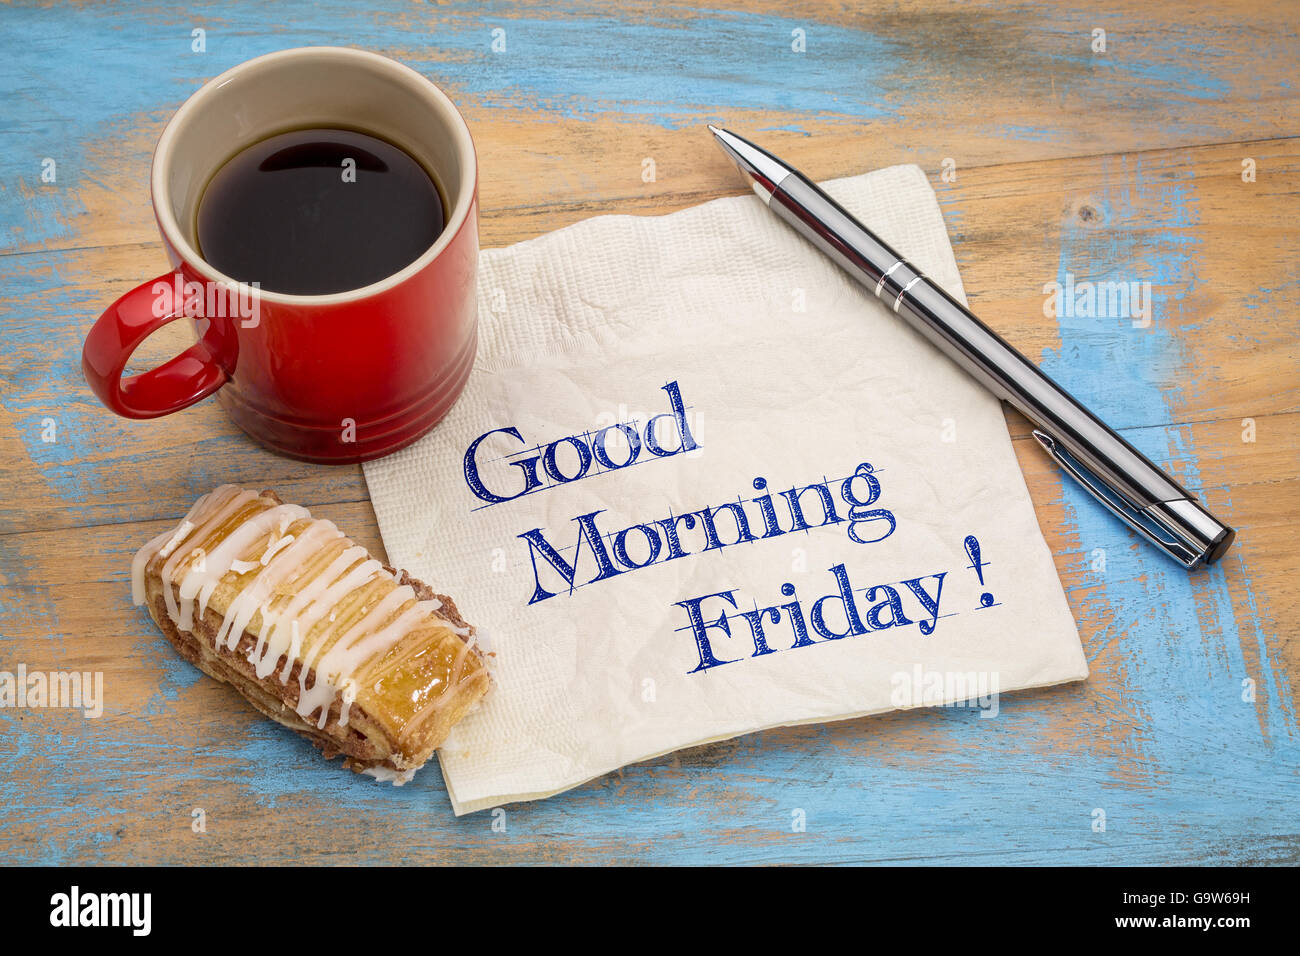 Good Morning Coffee Friday : Good morning friday handwriting on a napkin with cup